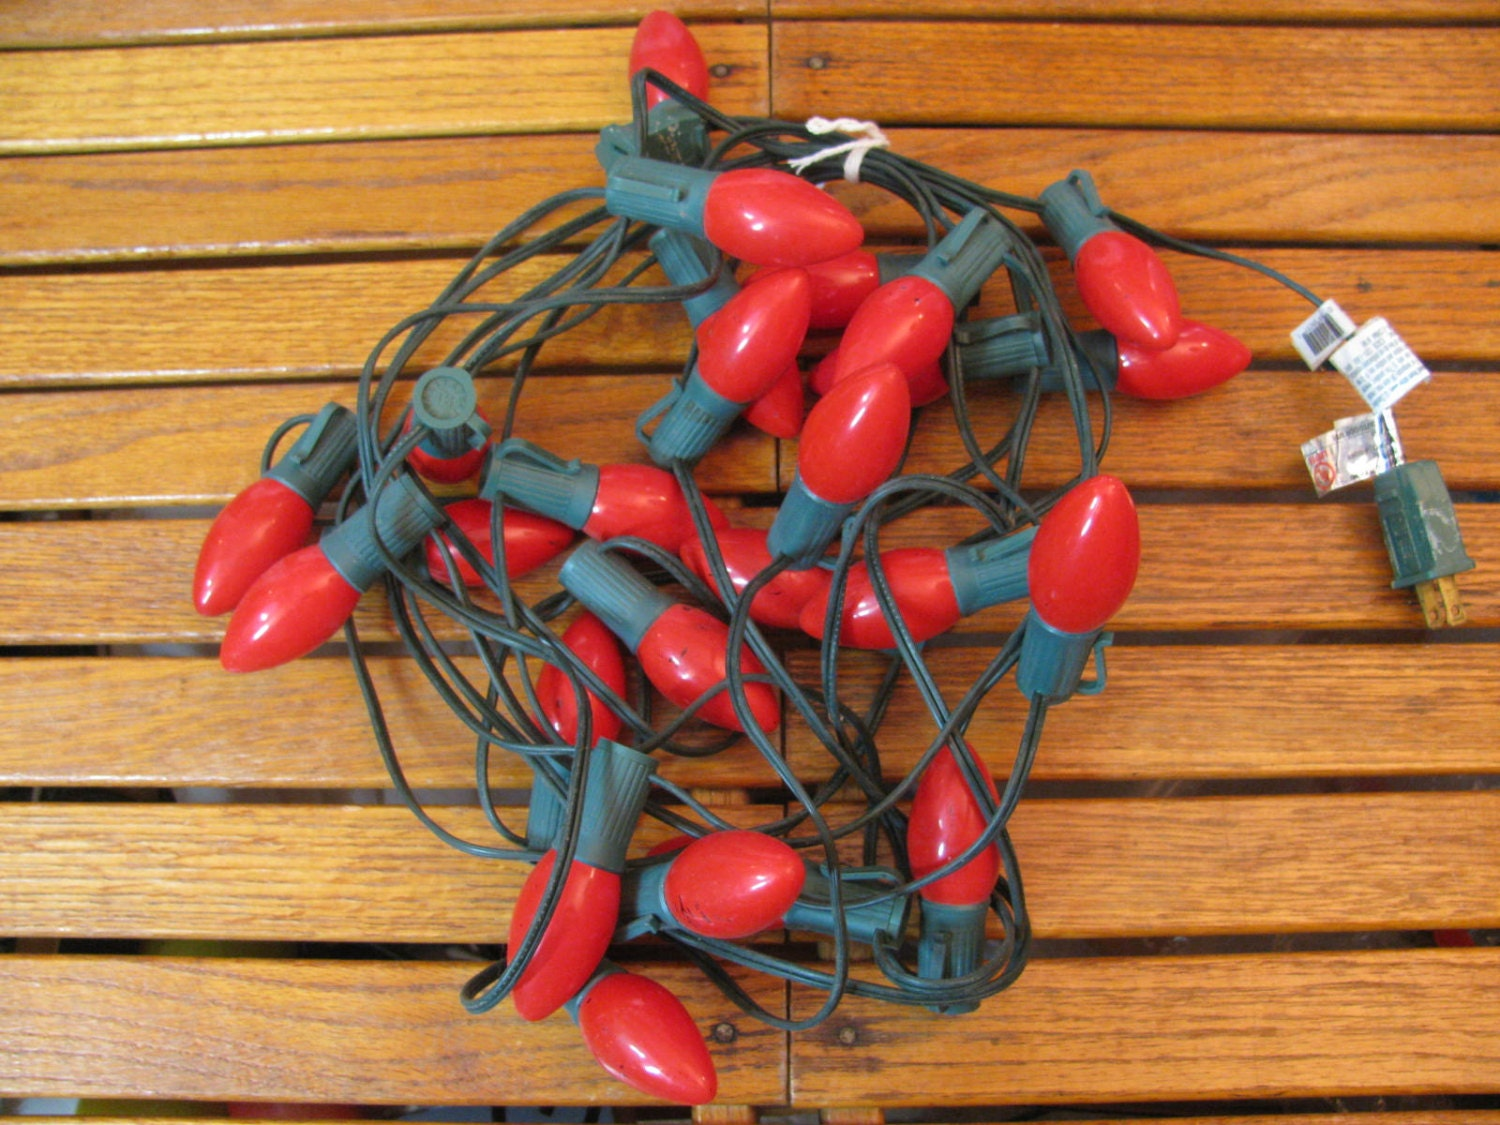 Vintage String Lights Etsy : Items similar to Vintage 25 Light String Christmas Red 1980s C 9 Strand Cristmas Tree Lights on Etsy